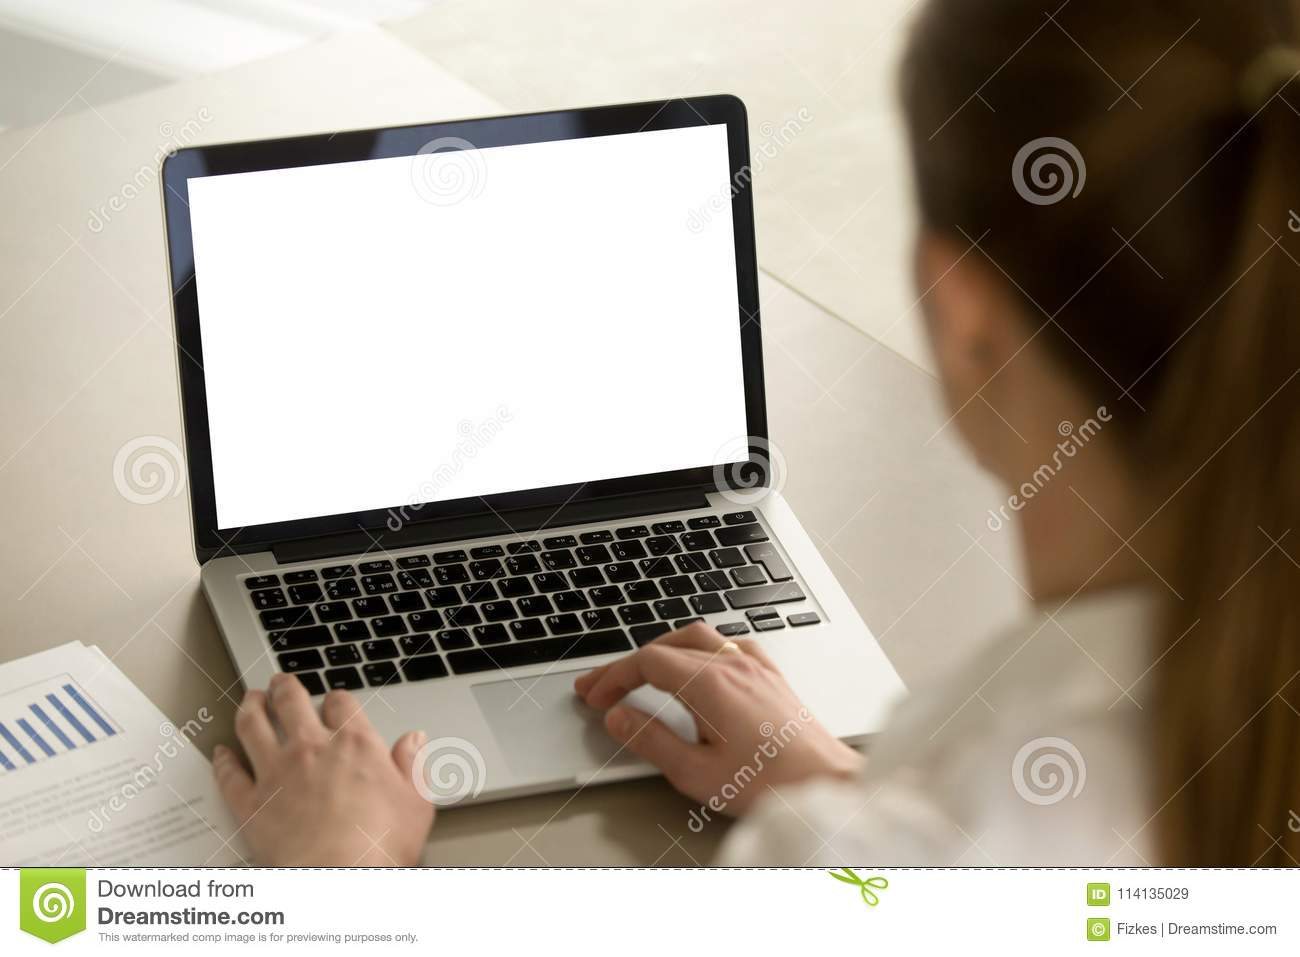 Woman in office working on laptop with mockup blank screen.